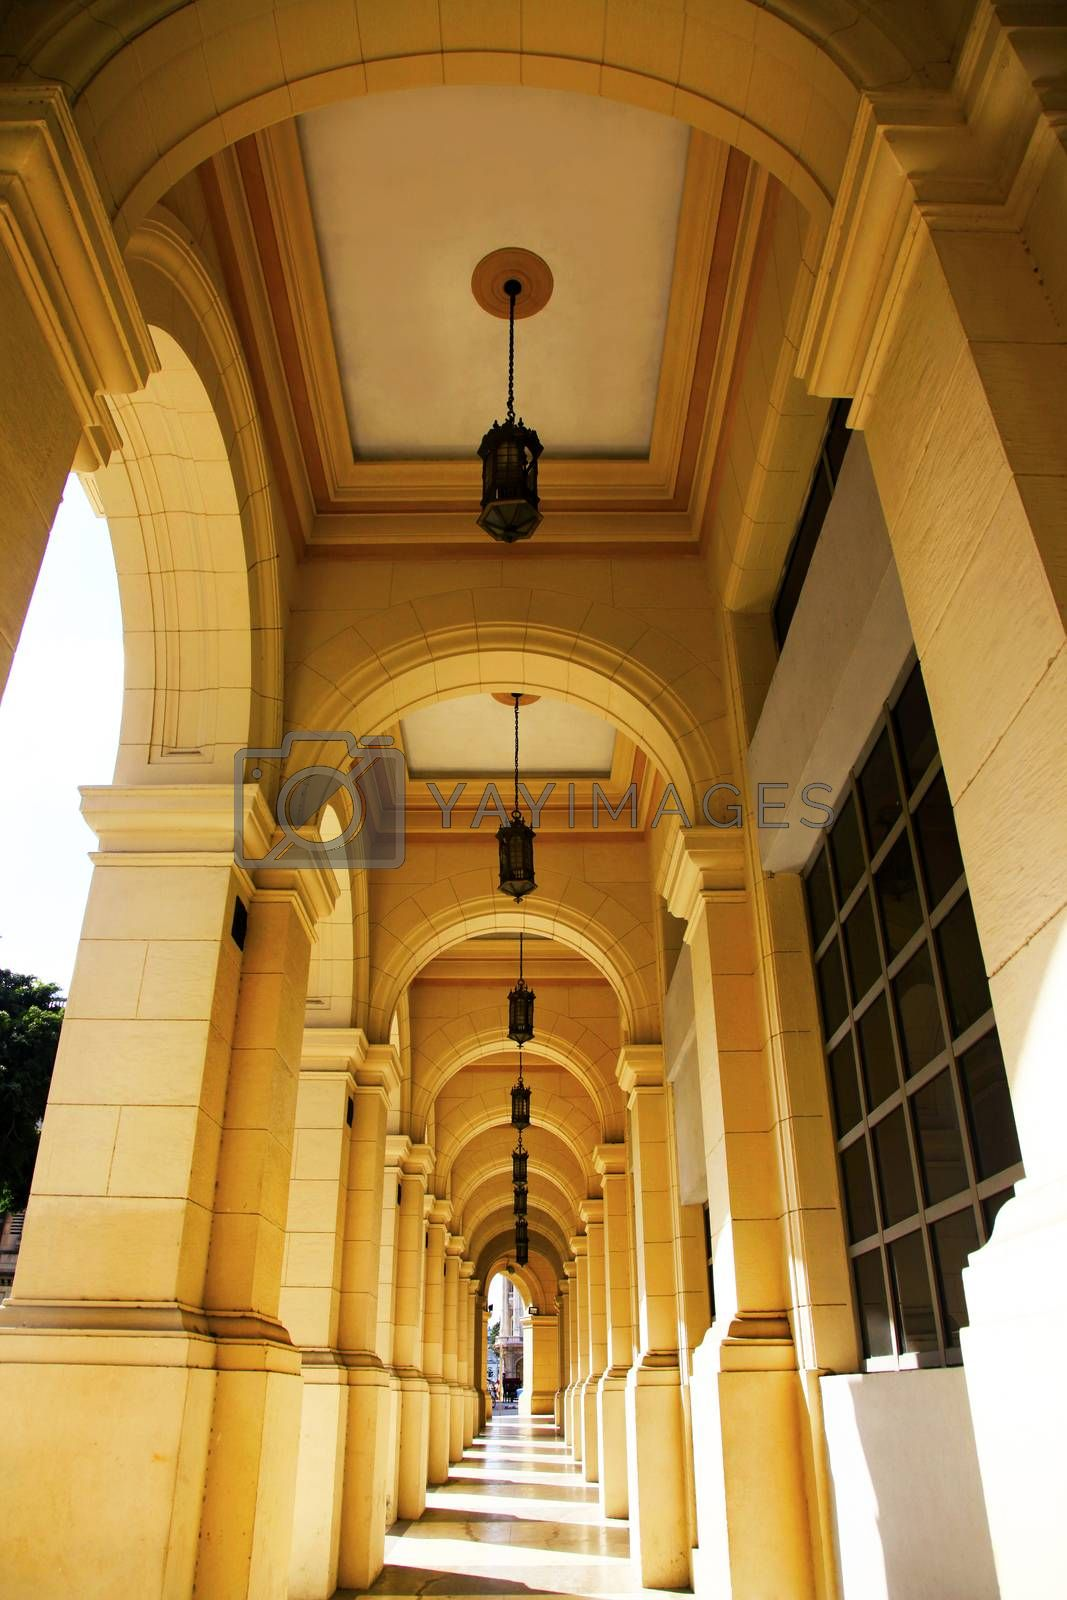 Royalty free image of Typical portico under a colonial building in Cuba by friday